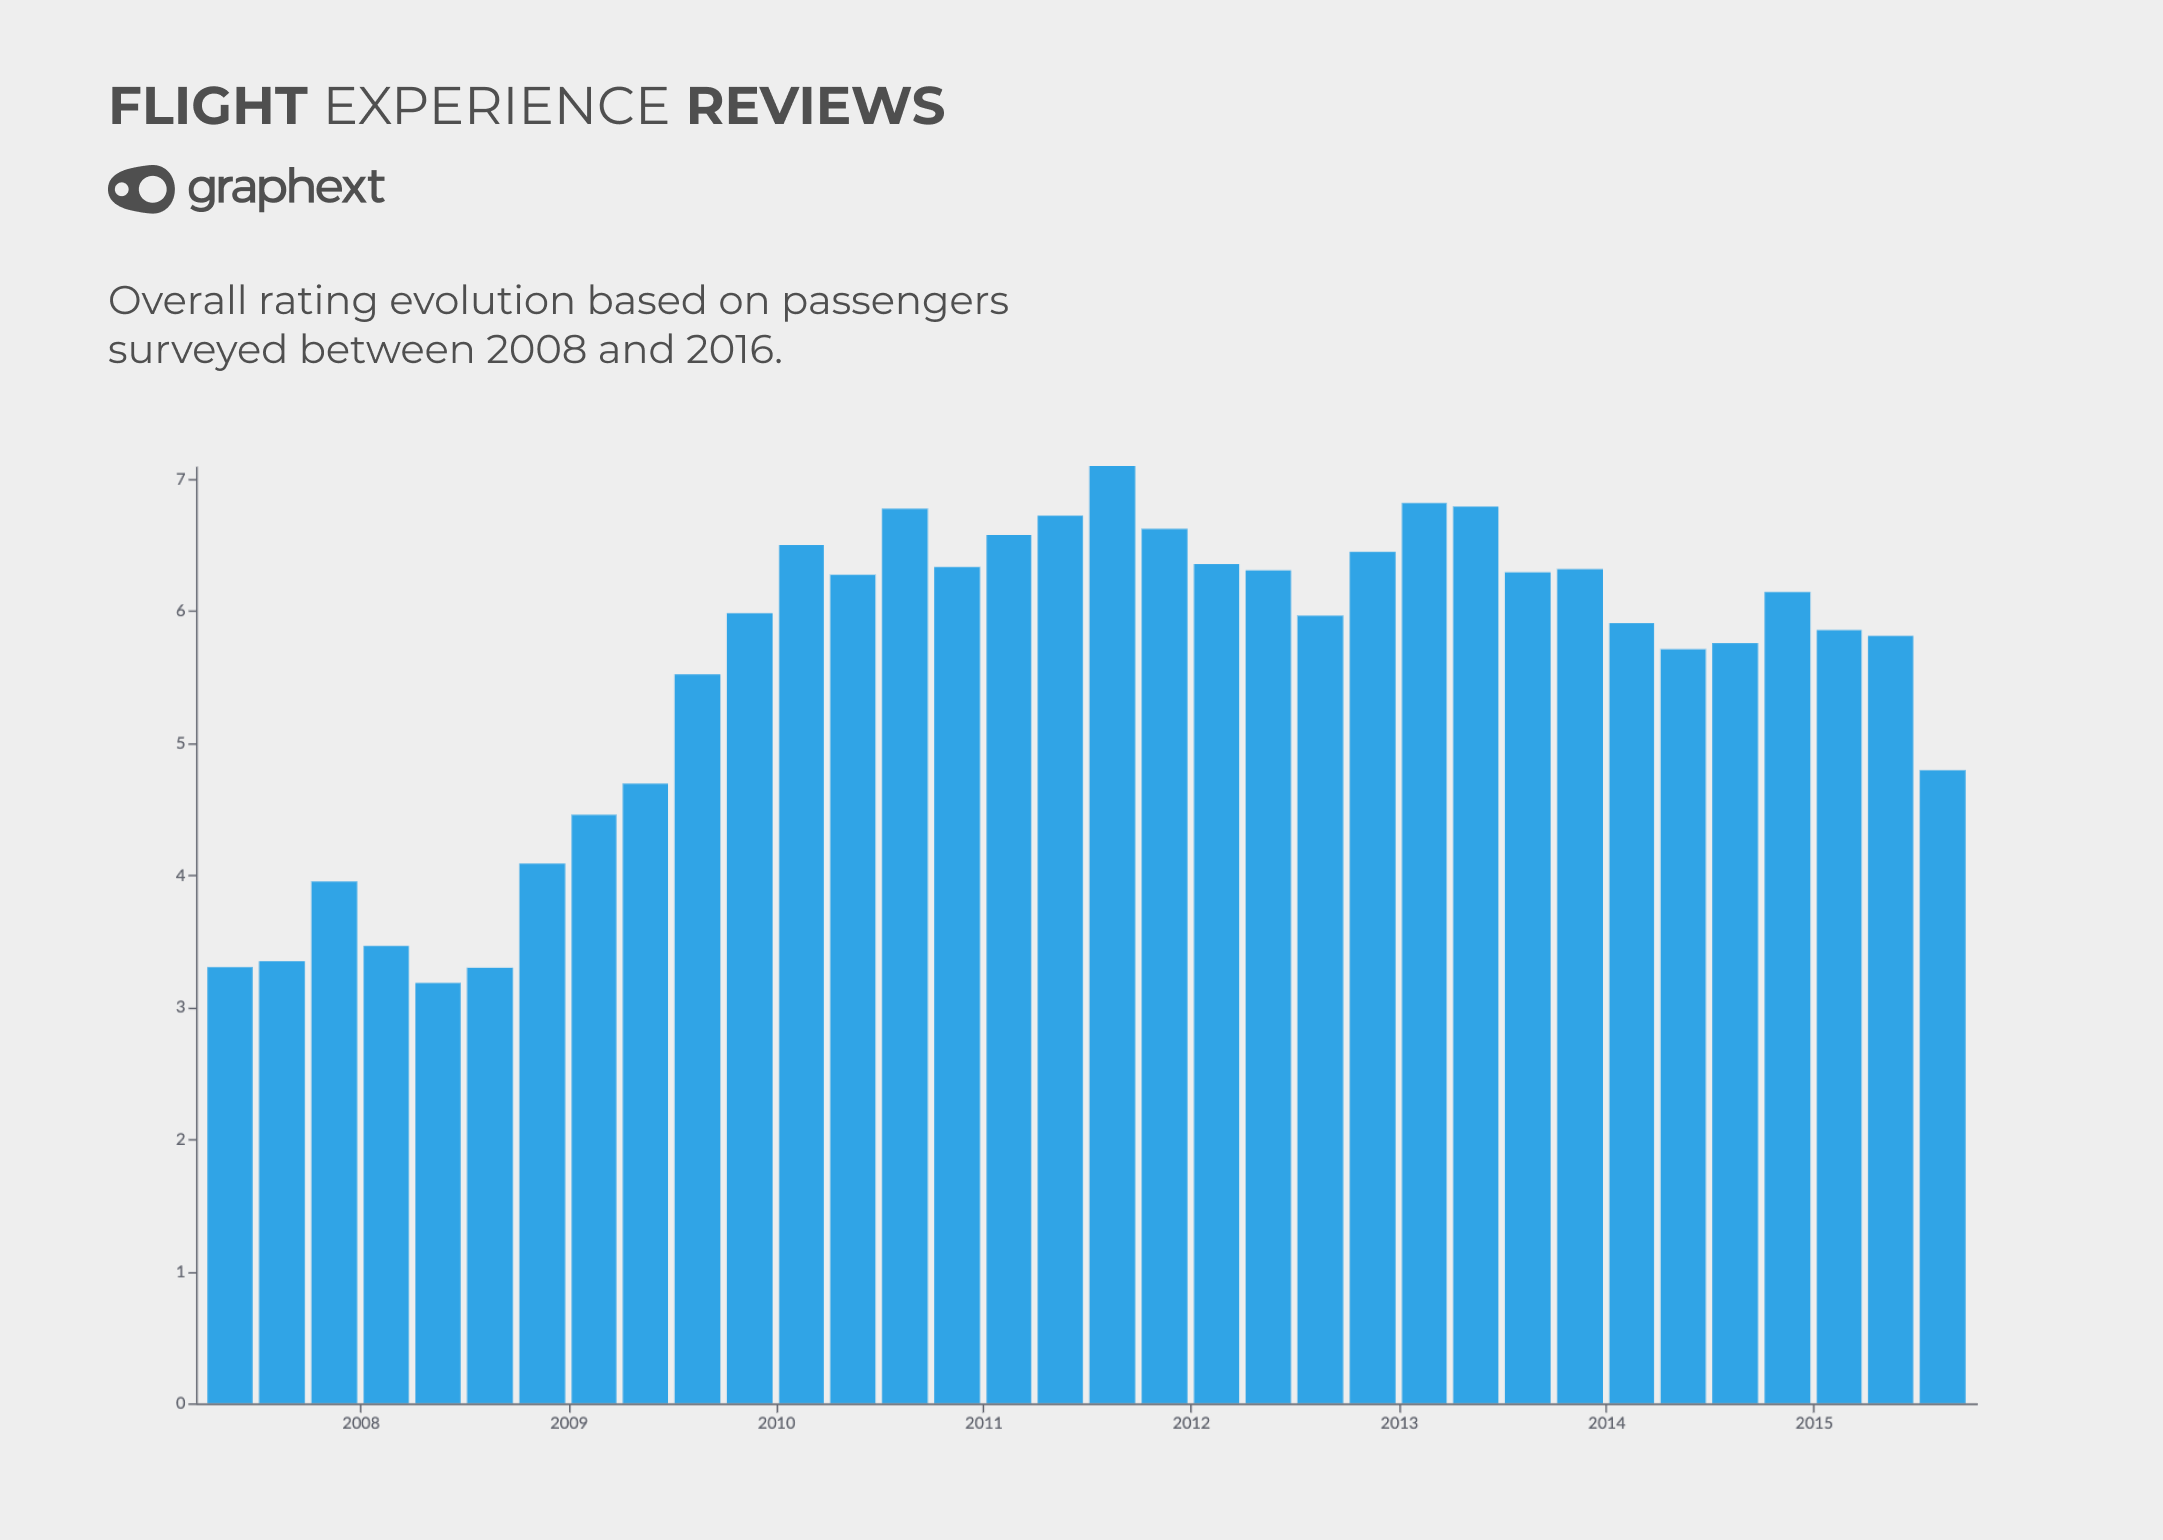 A chart showing how the ratings associated with airline reviews have evolved between 2008 and 2016.